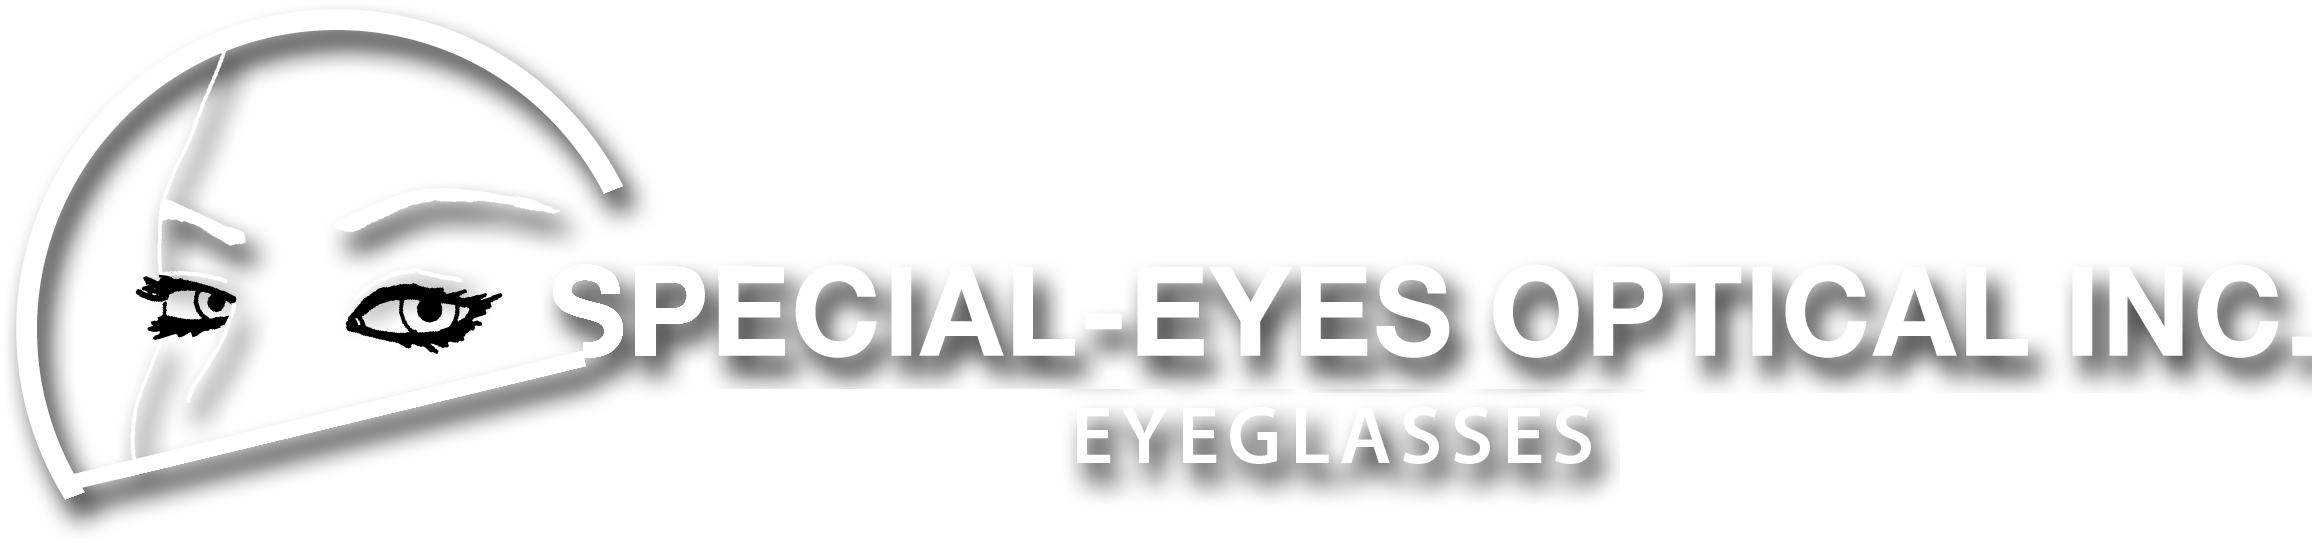 Special-Eyes Optical Inc.